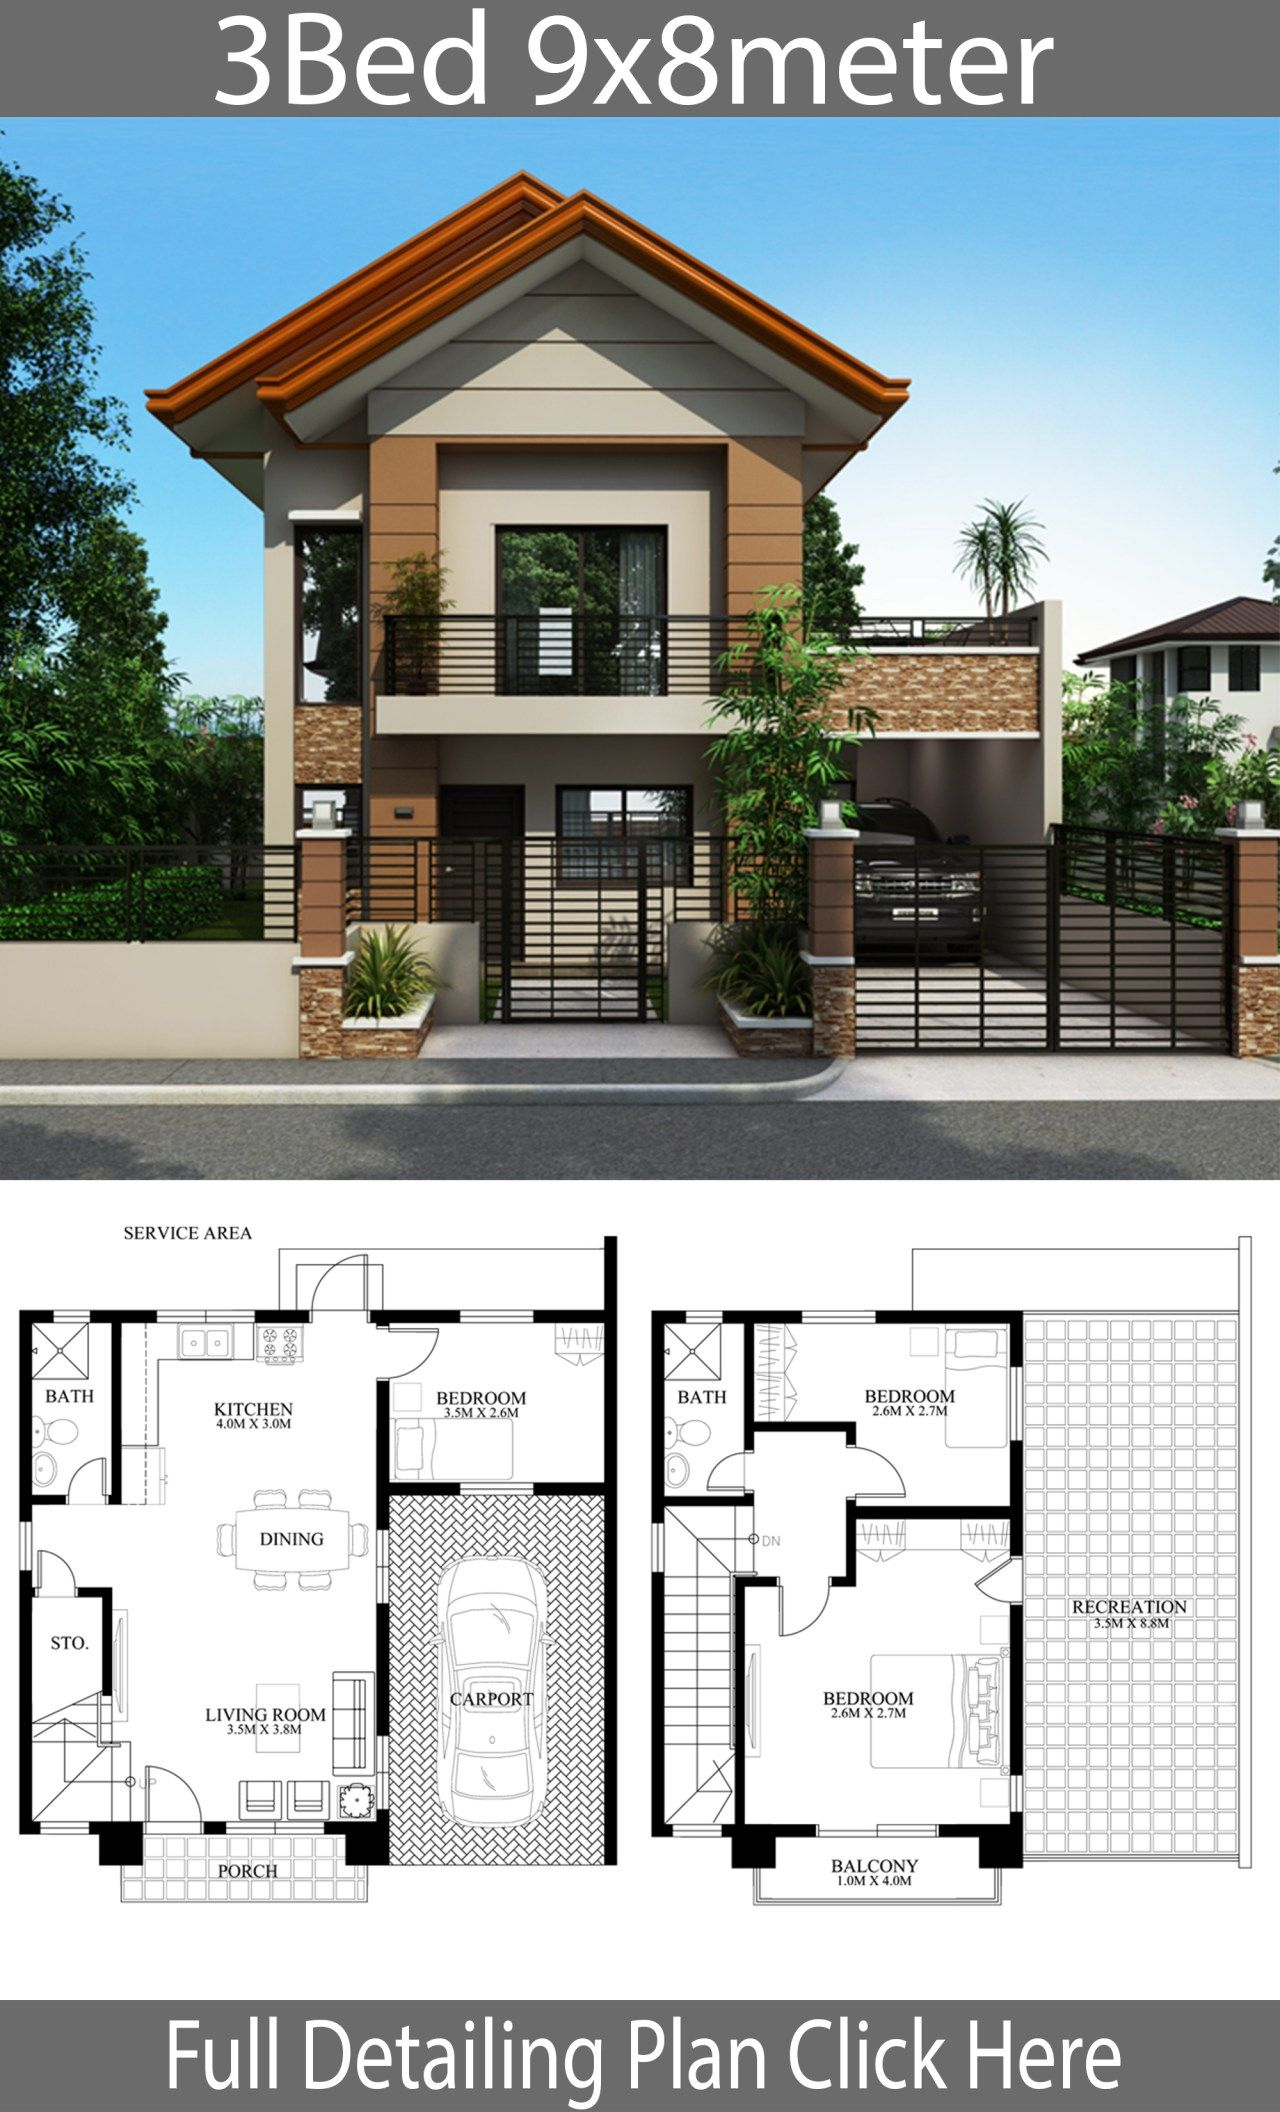 Home Design Plan 9x8m With 3 Bedrooms Home Ideas Philippines House Design 2 Storey House Design Bungalow House Design